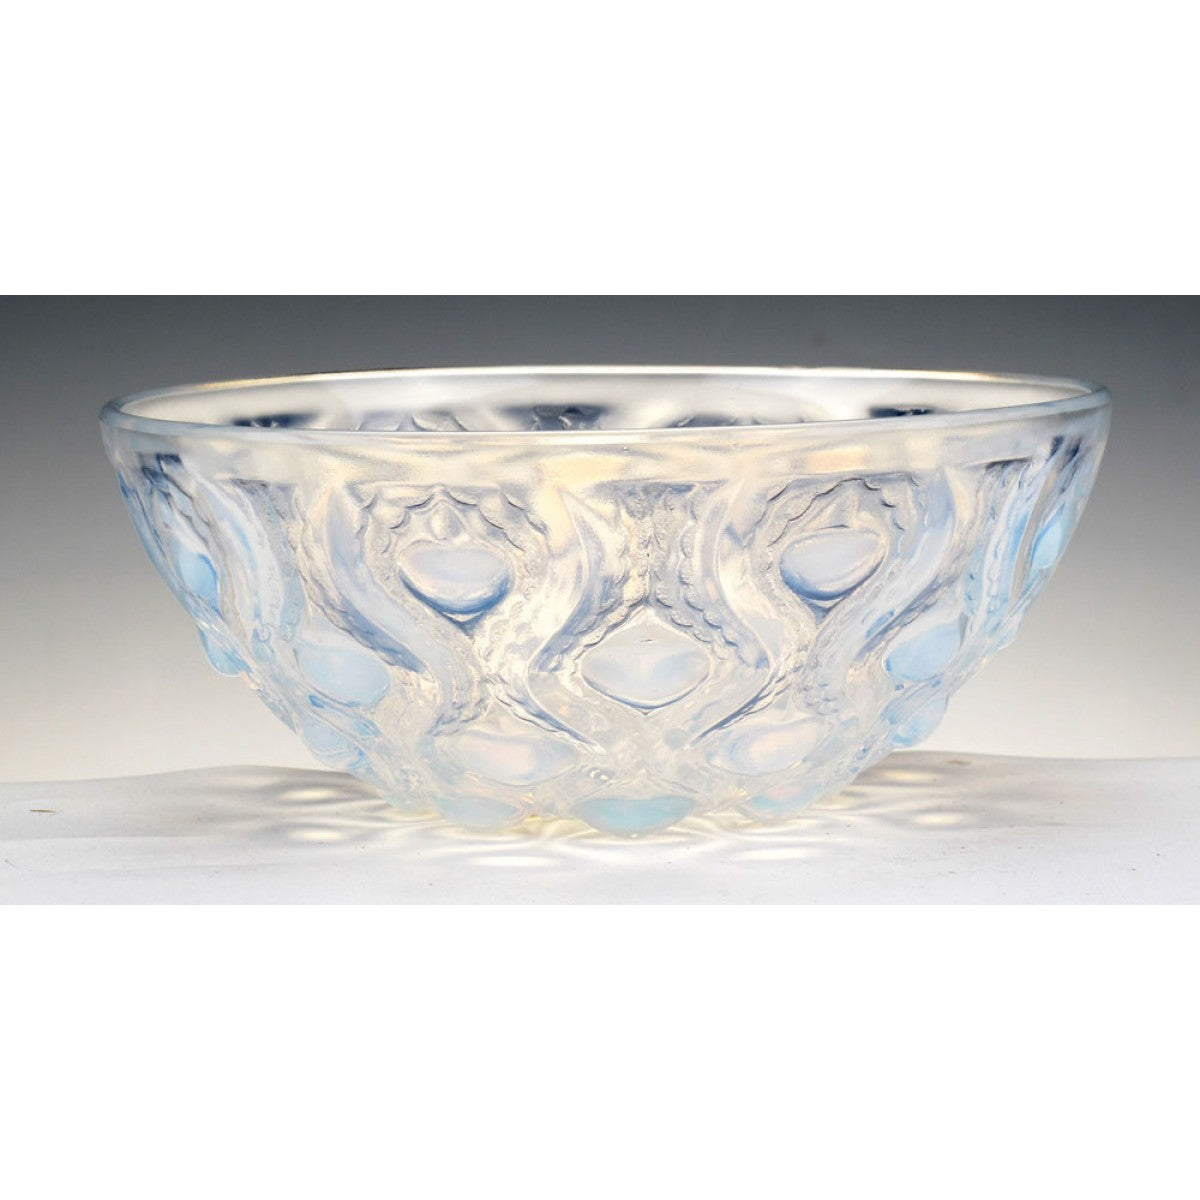 Opalescent bowl